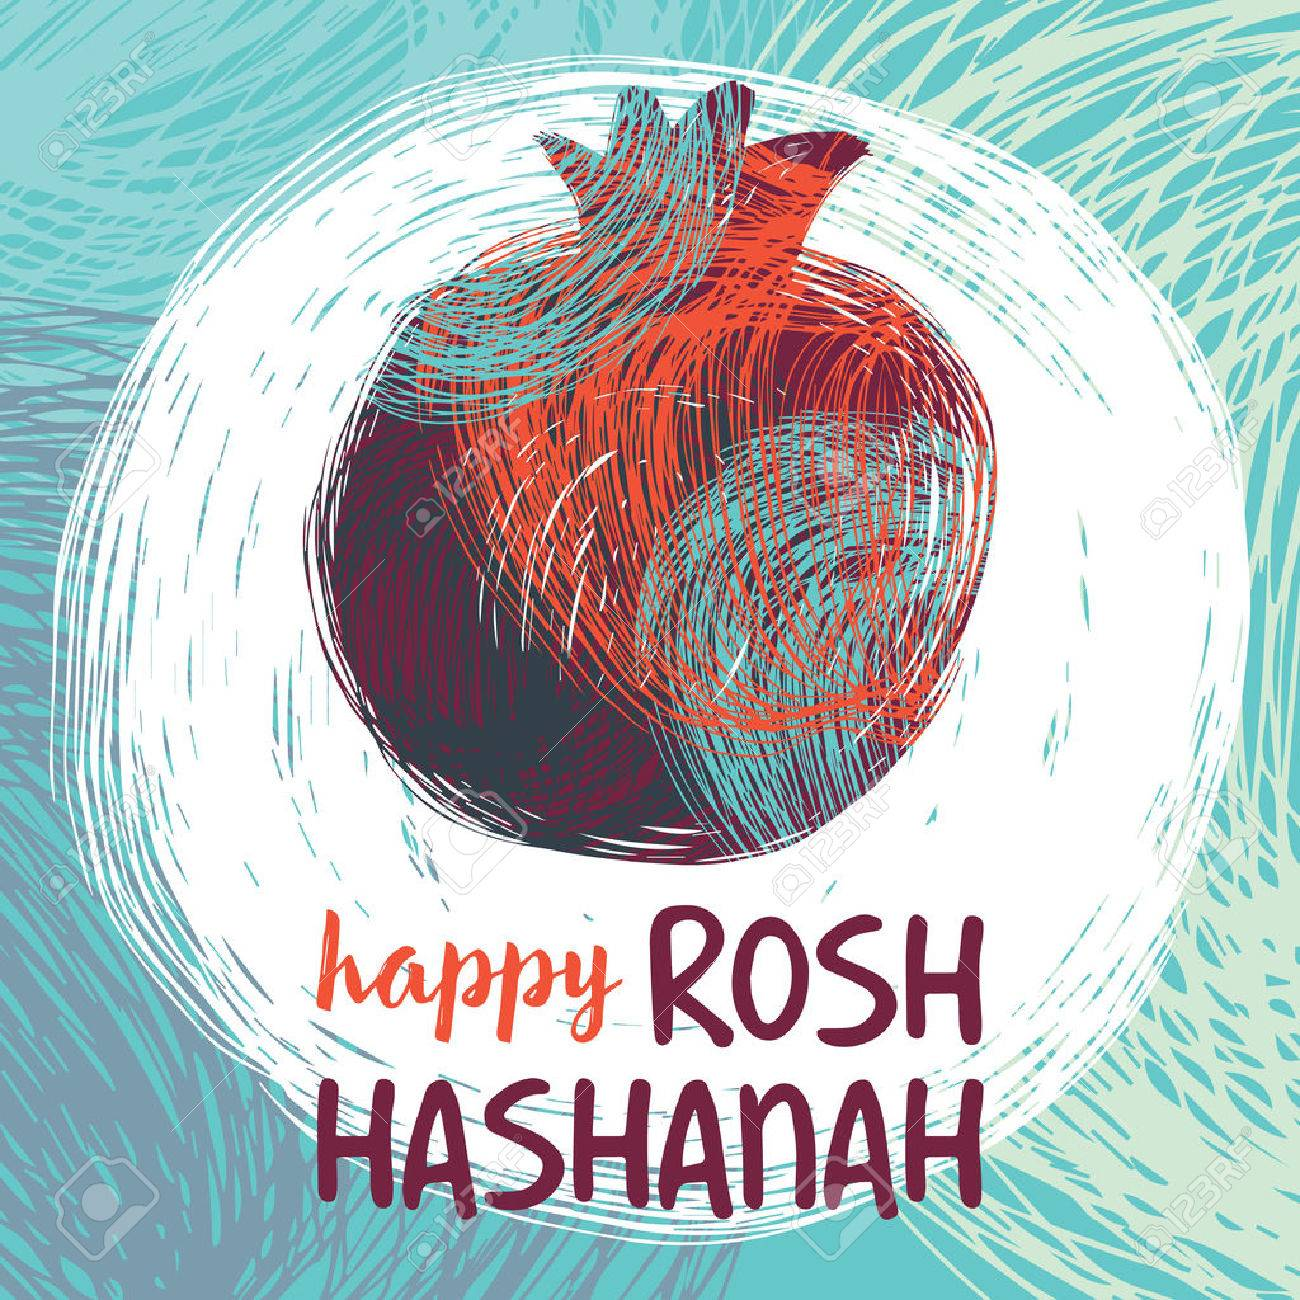 Greeting card wiyh symbol of rosh hashanah pomegranate jewish greeting card wiyh symbol of rosh hashanah pomegranate jewish new year celebration design kristyandbryce Choice Image